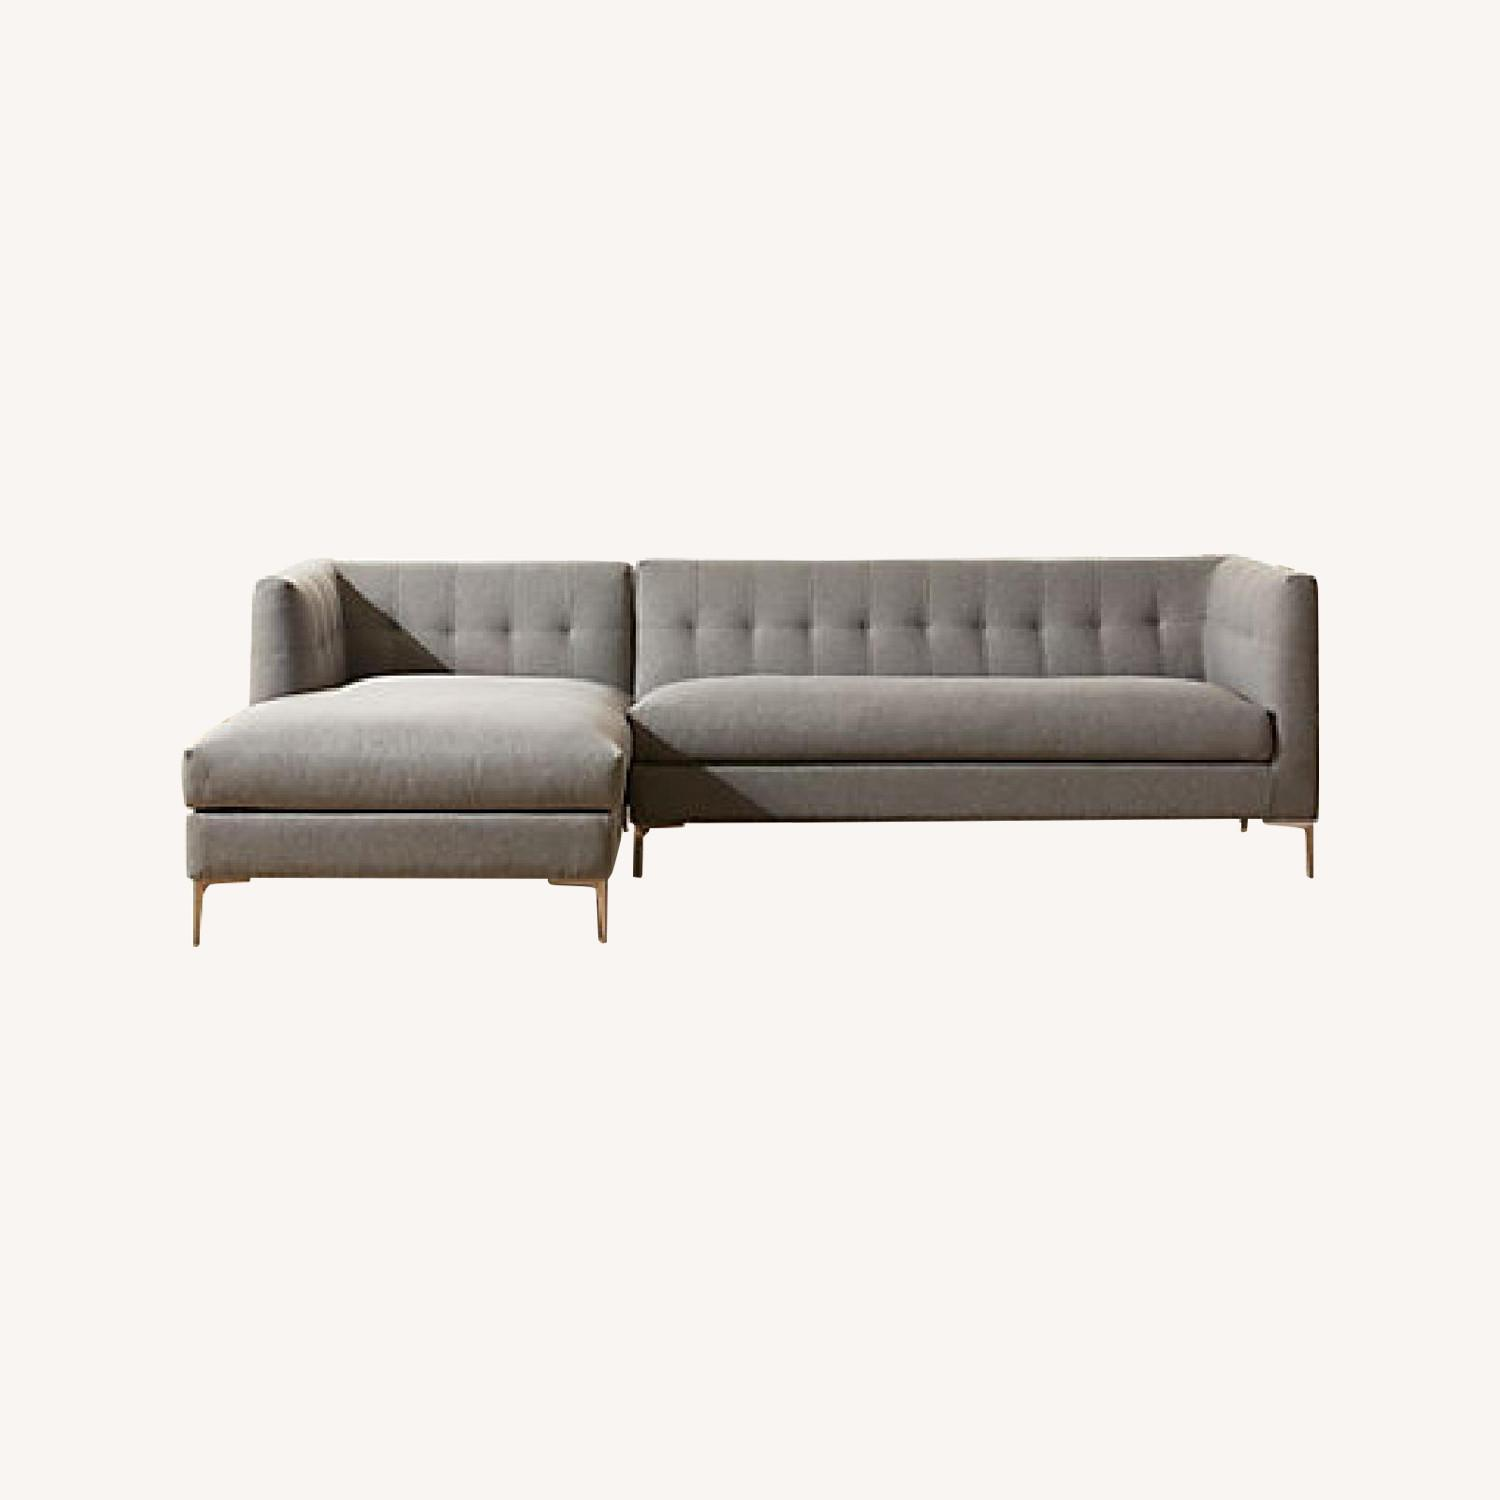 CB2 Tufted Grey Chaise Lounge Sofa - image-0